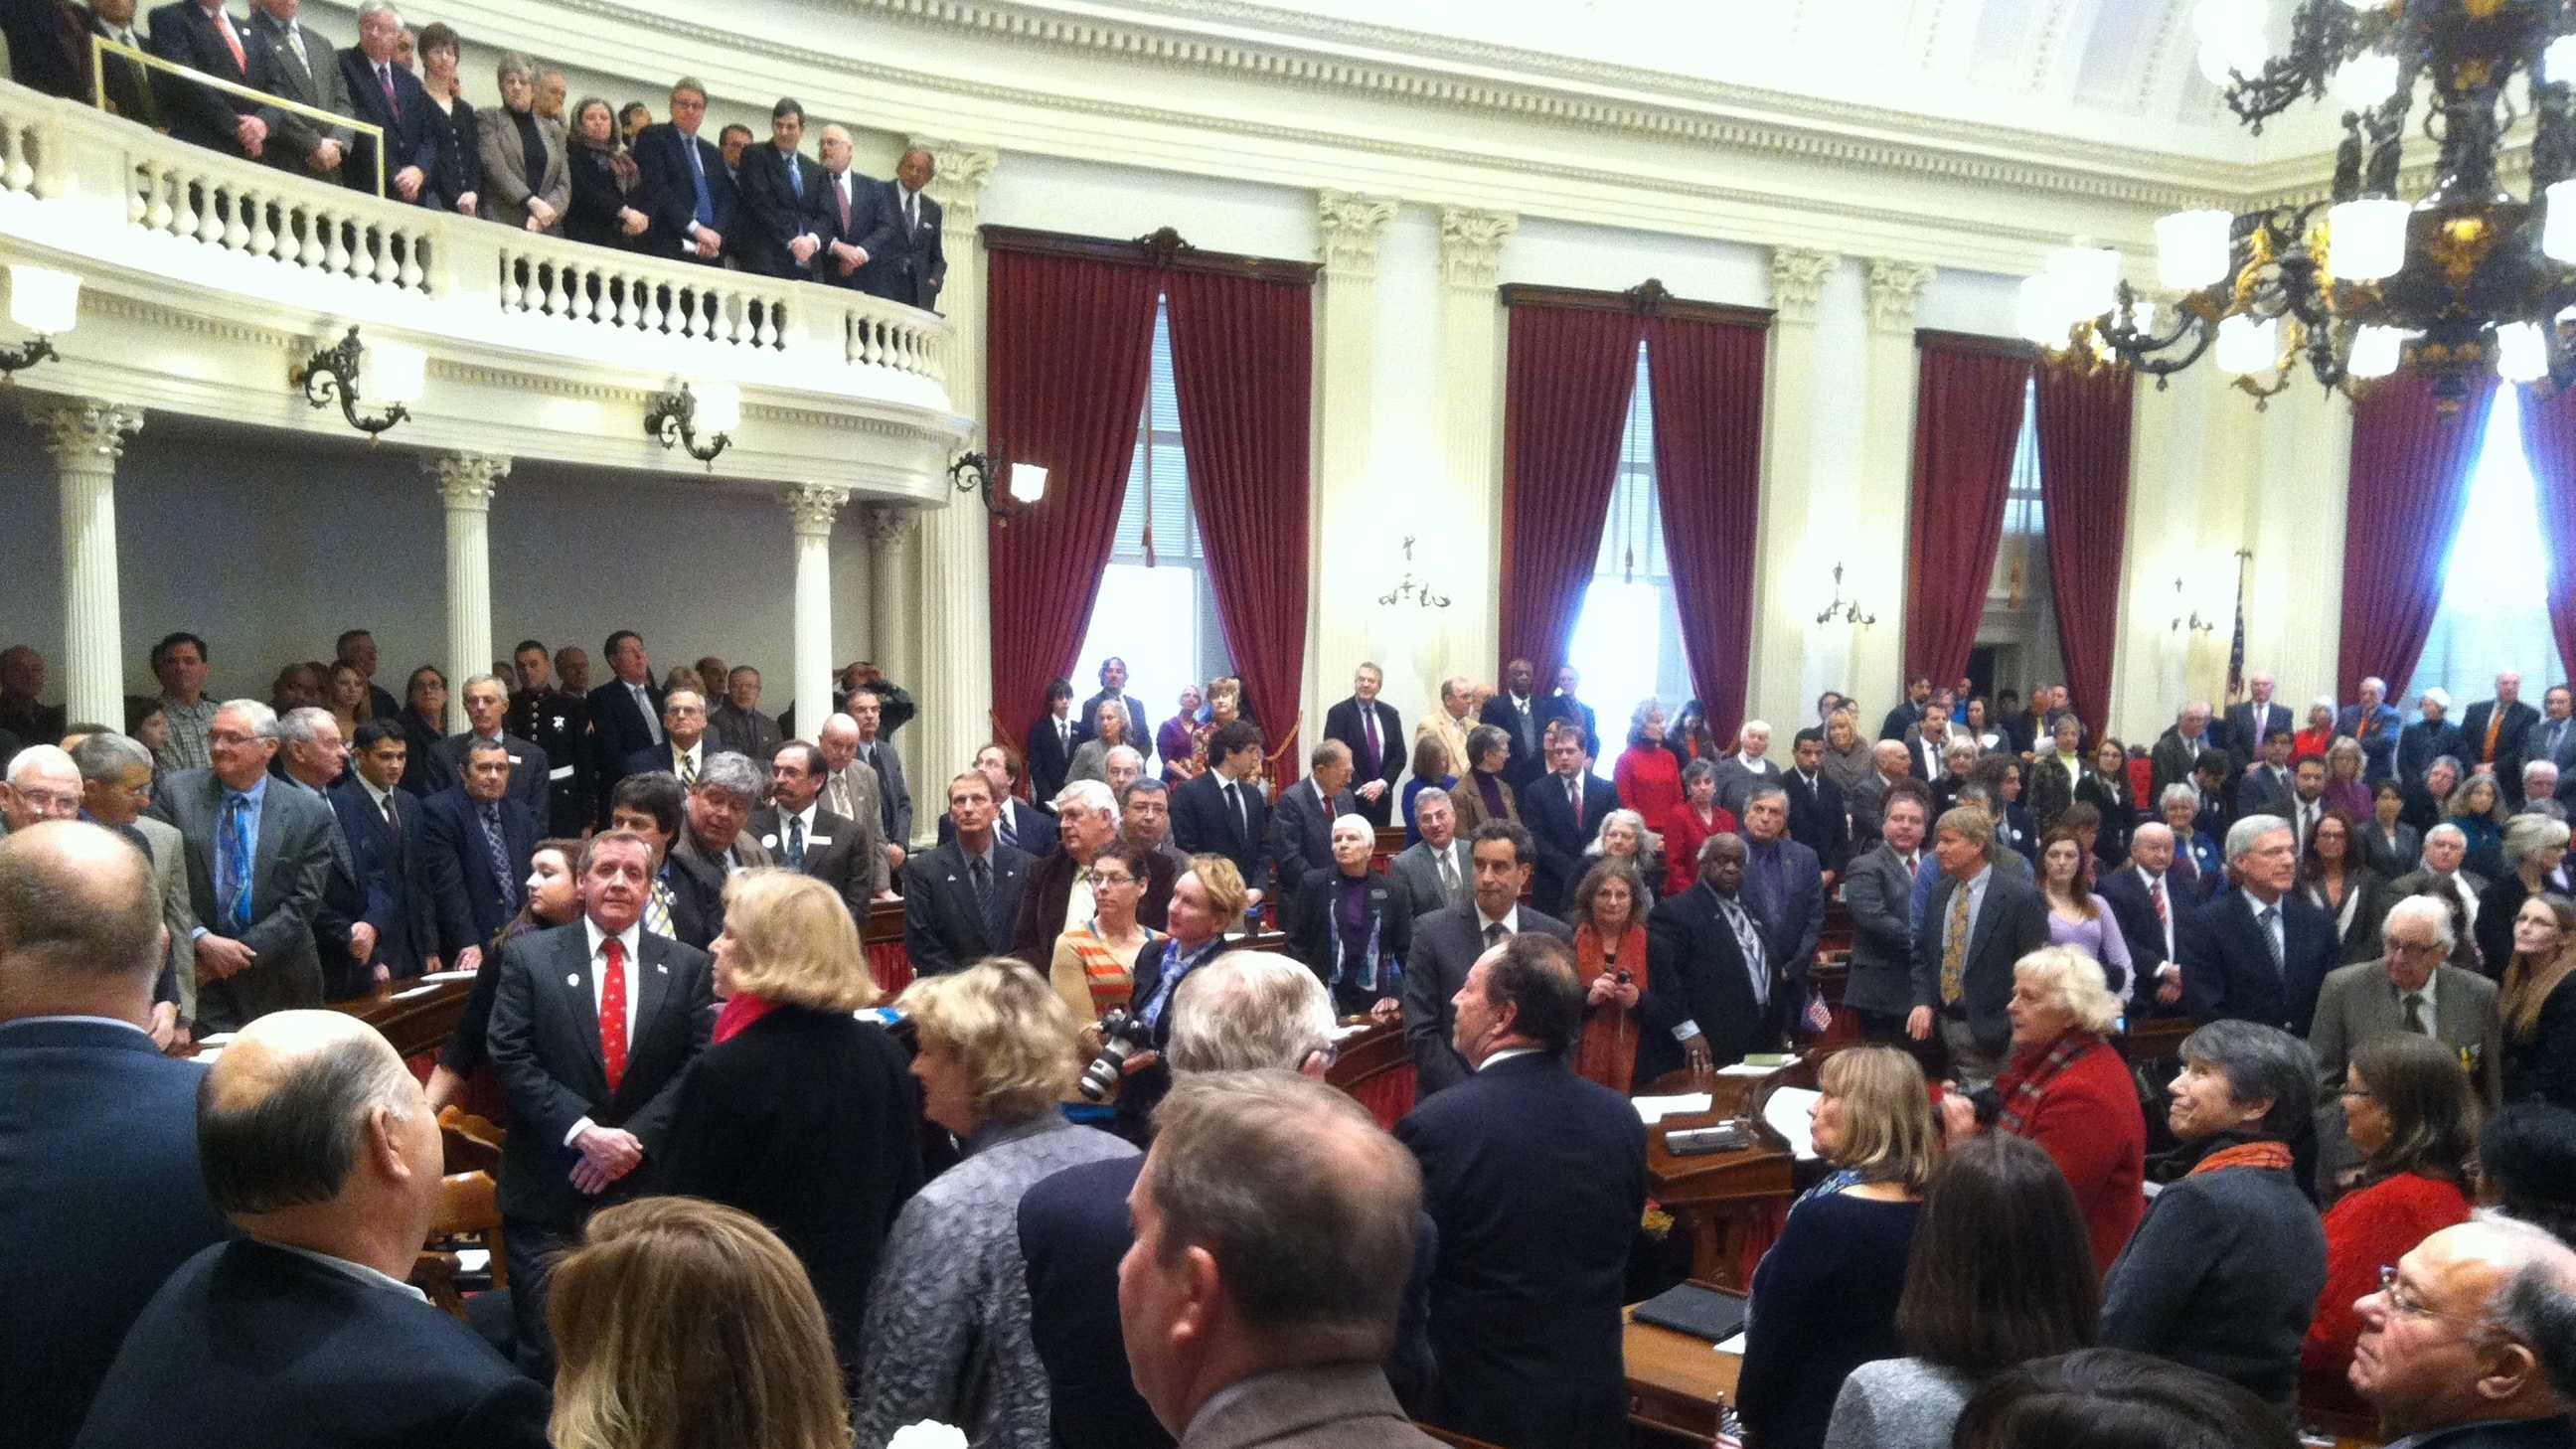 Packed House chamber for inaugural